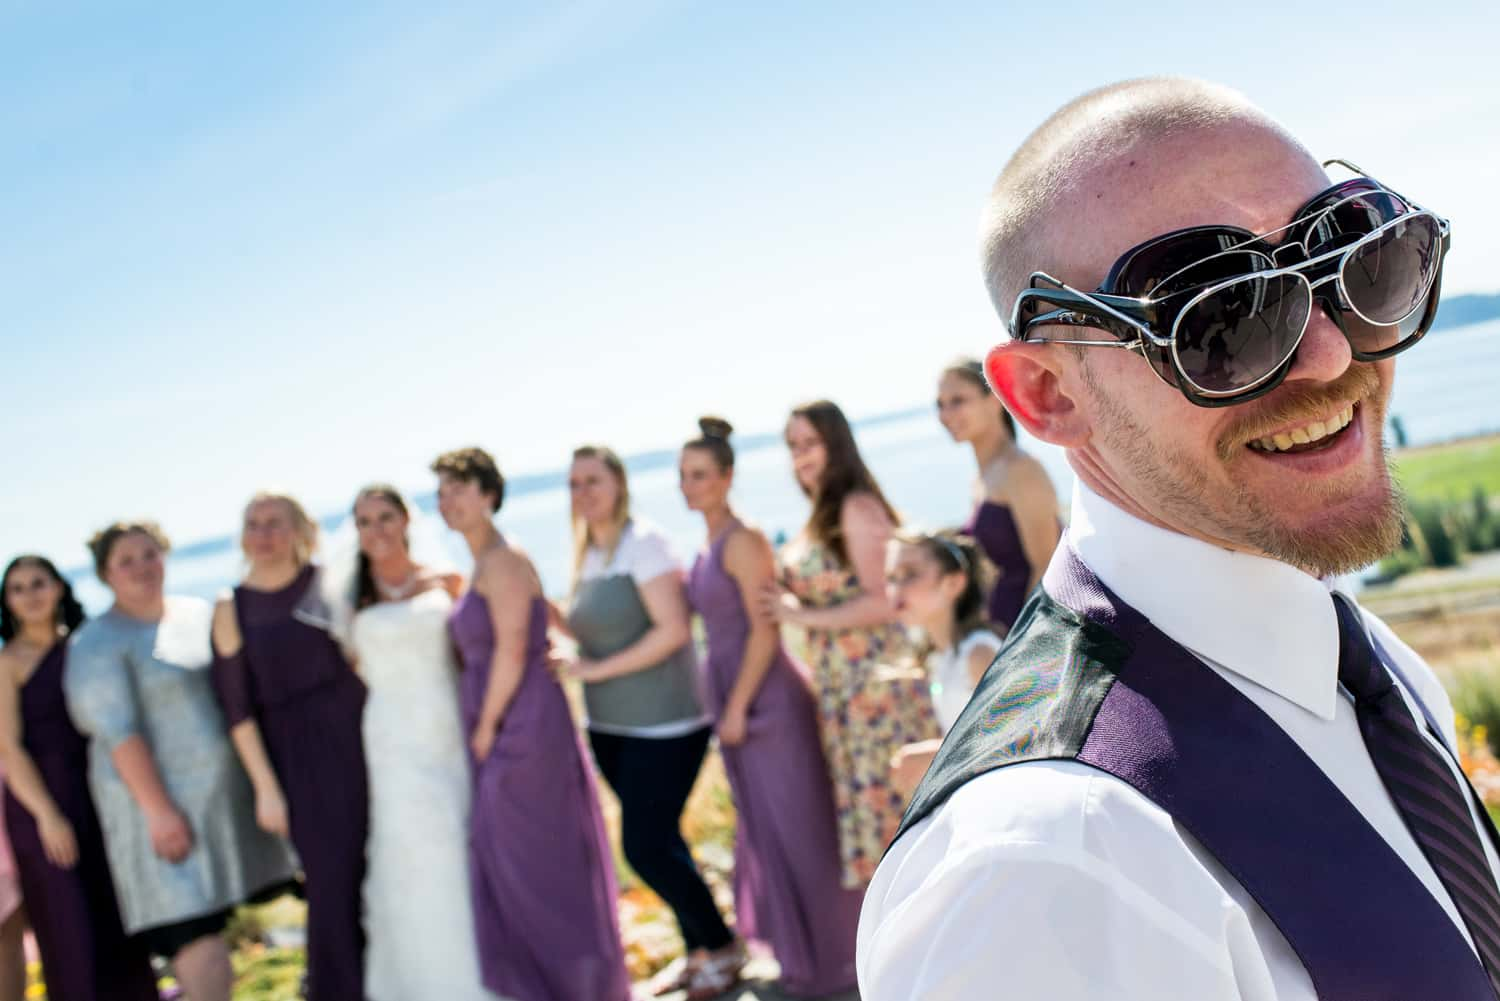 Groomsman goofing off during the family portraits by wearing 6 pairs of sunglasses on his face.